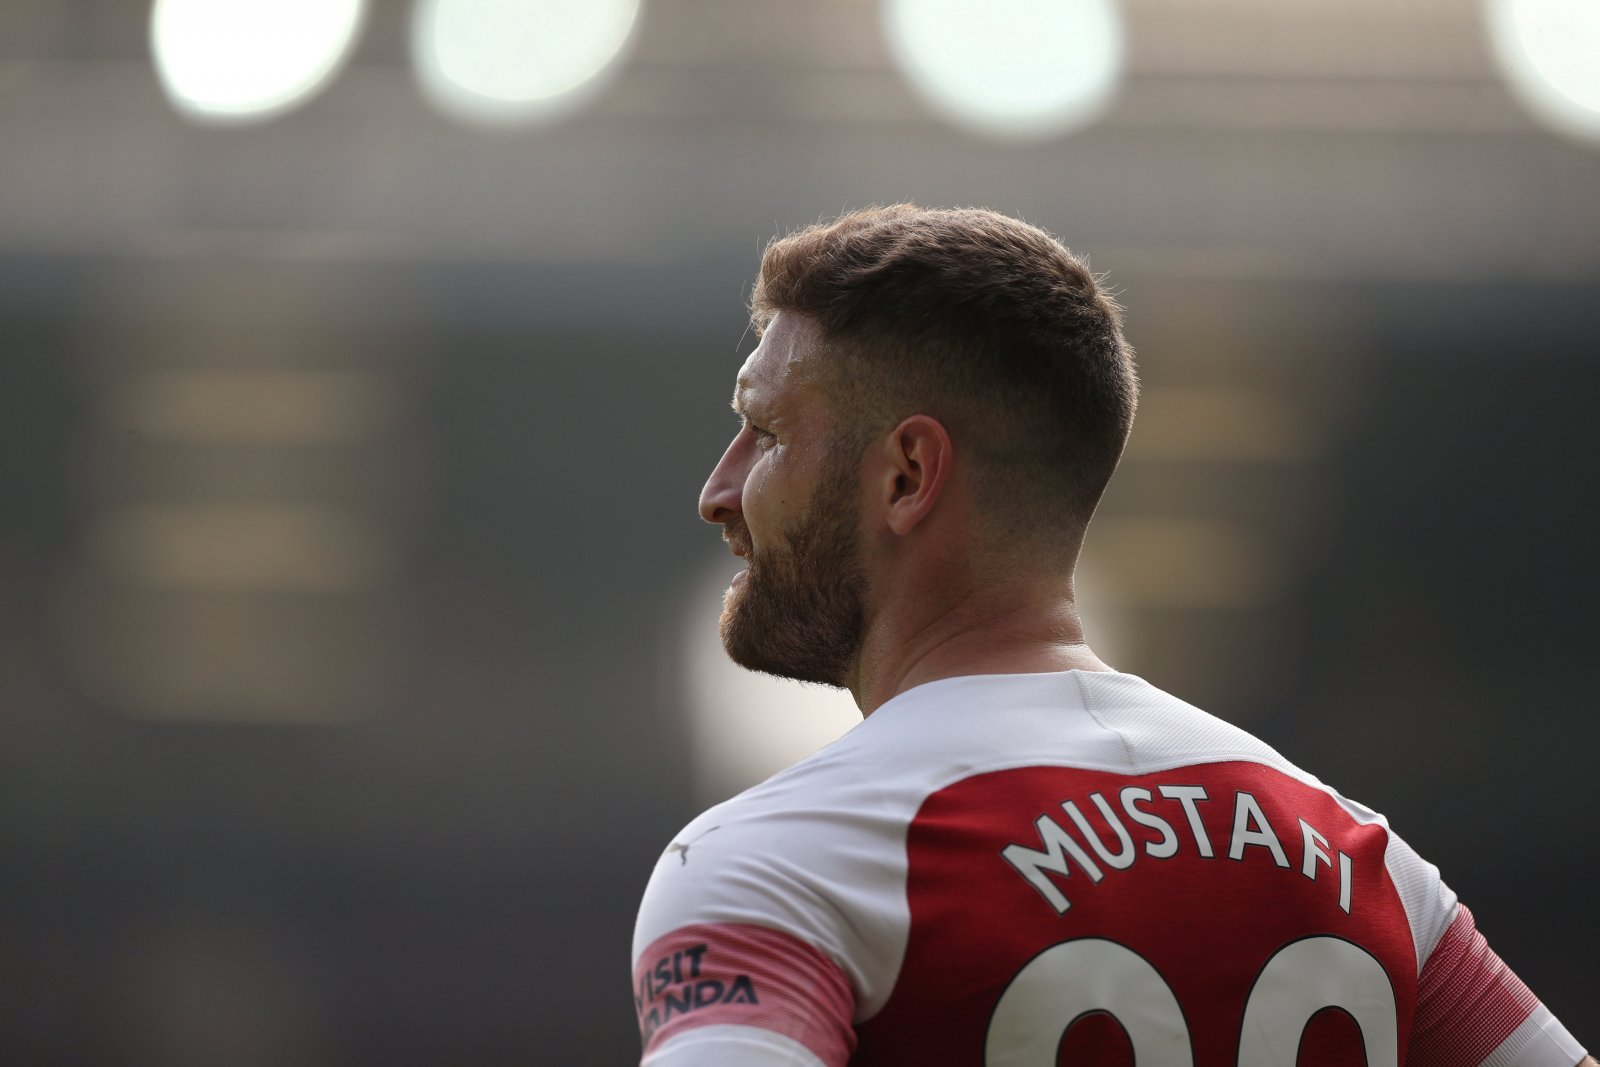 Arsenal: Last chance saloon for Shkodran Mustafi